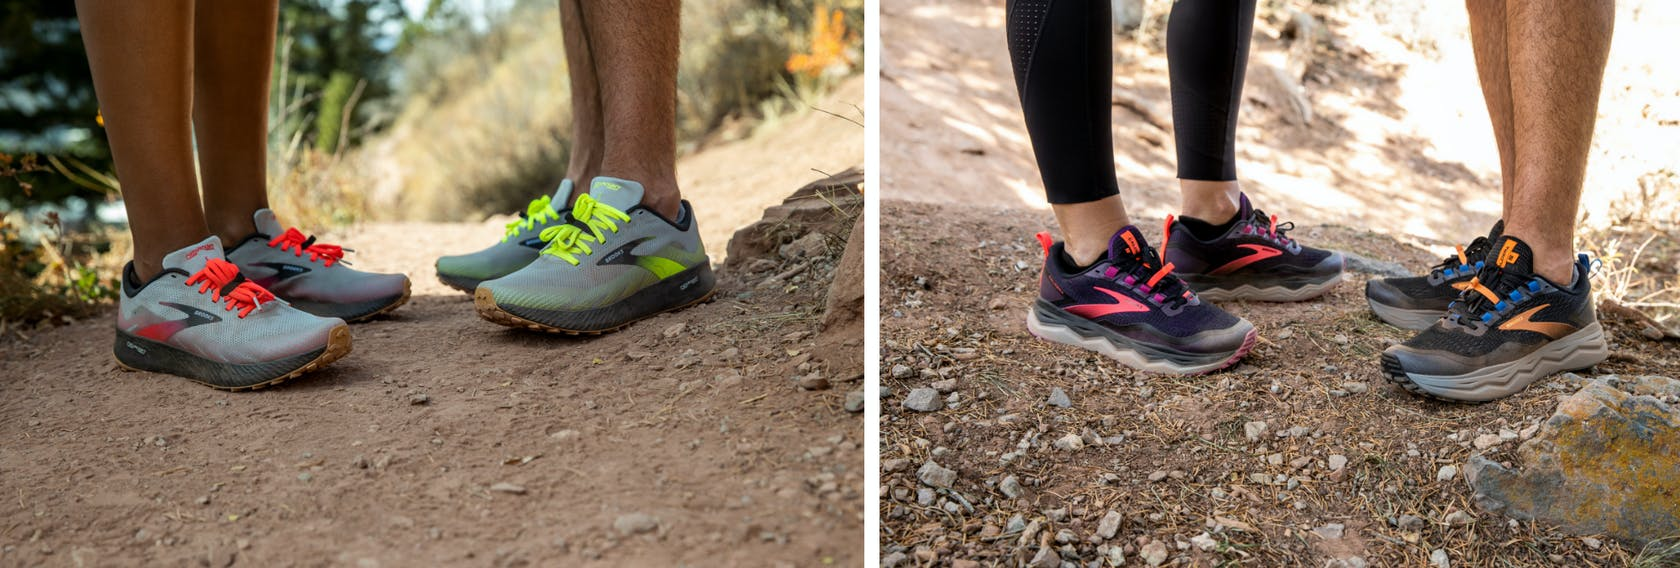 Brooks Trailrunning Onlineshop - Damen und Herren